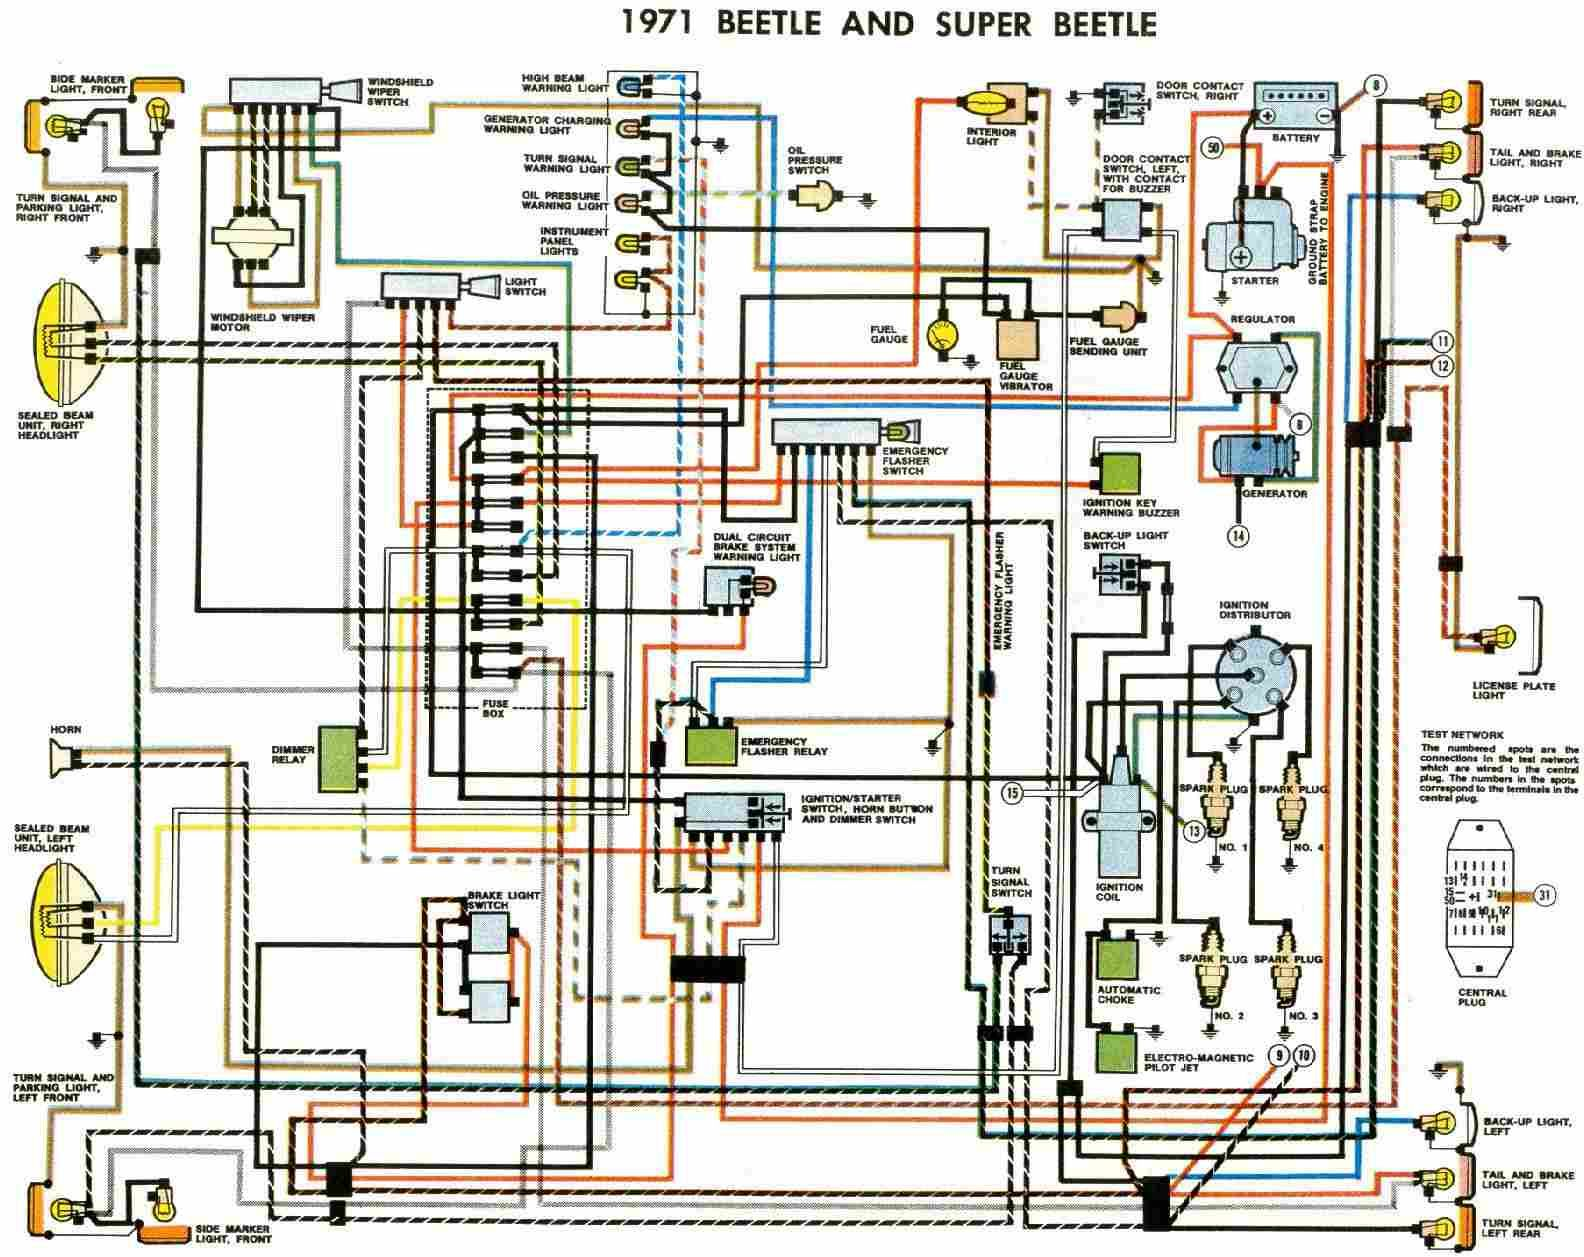 hight resolution of pin by cole fox on super beetle vw beetles beetle volkswagen rh pinterest com international farmall super a wiring diagram super beetle wiring diagram